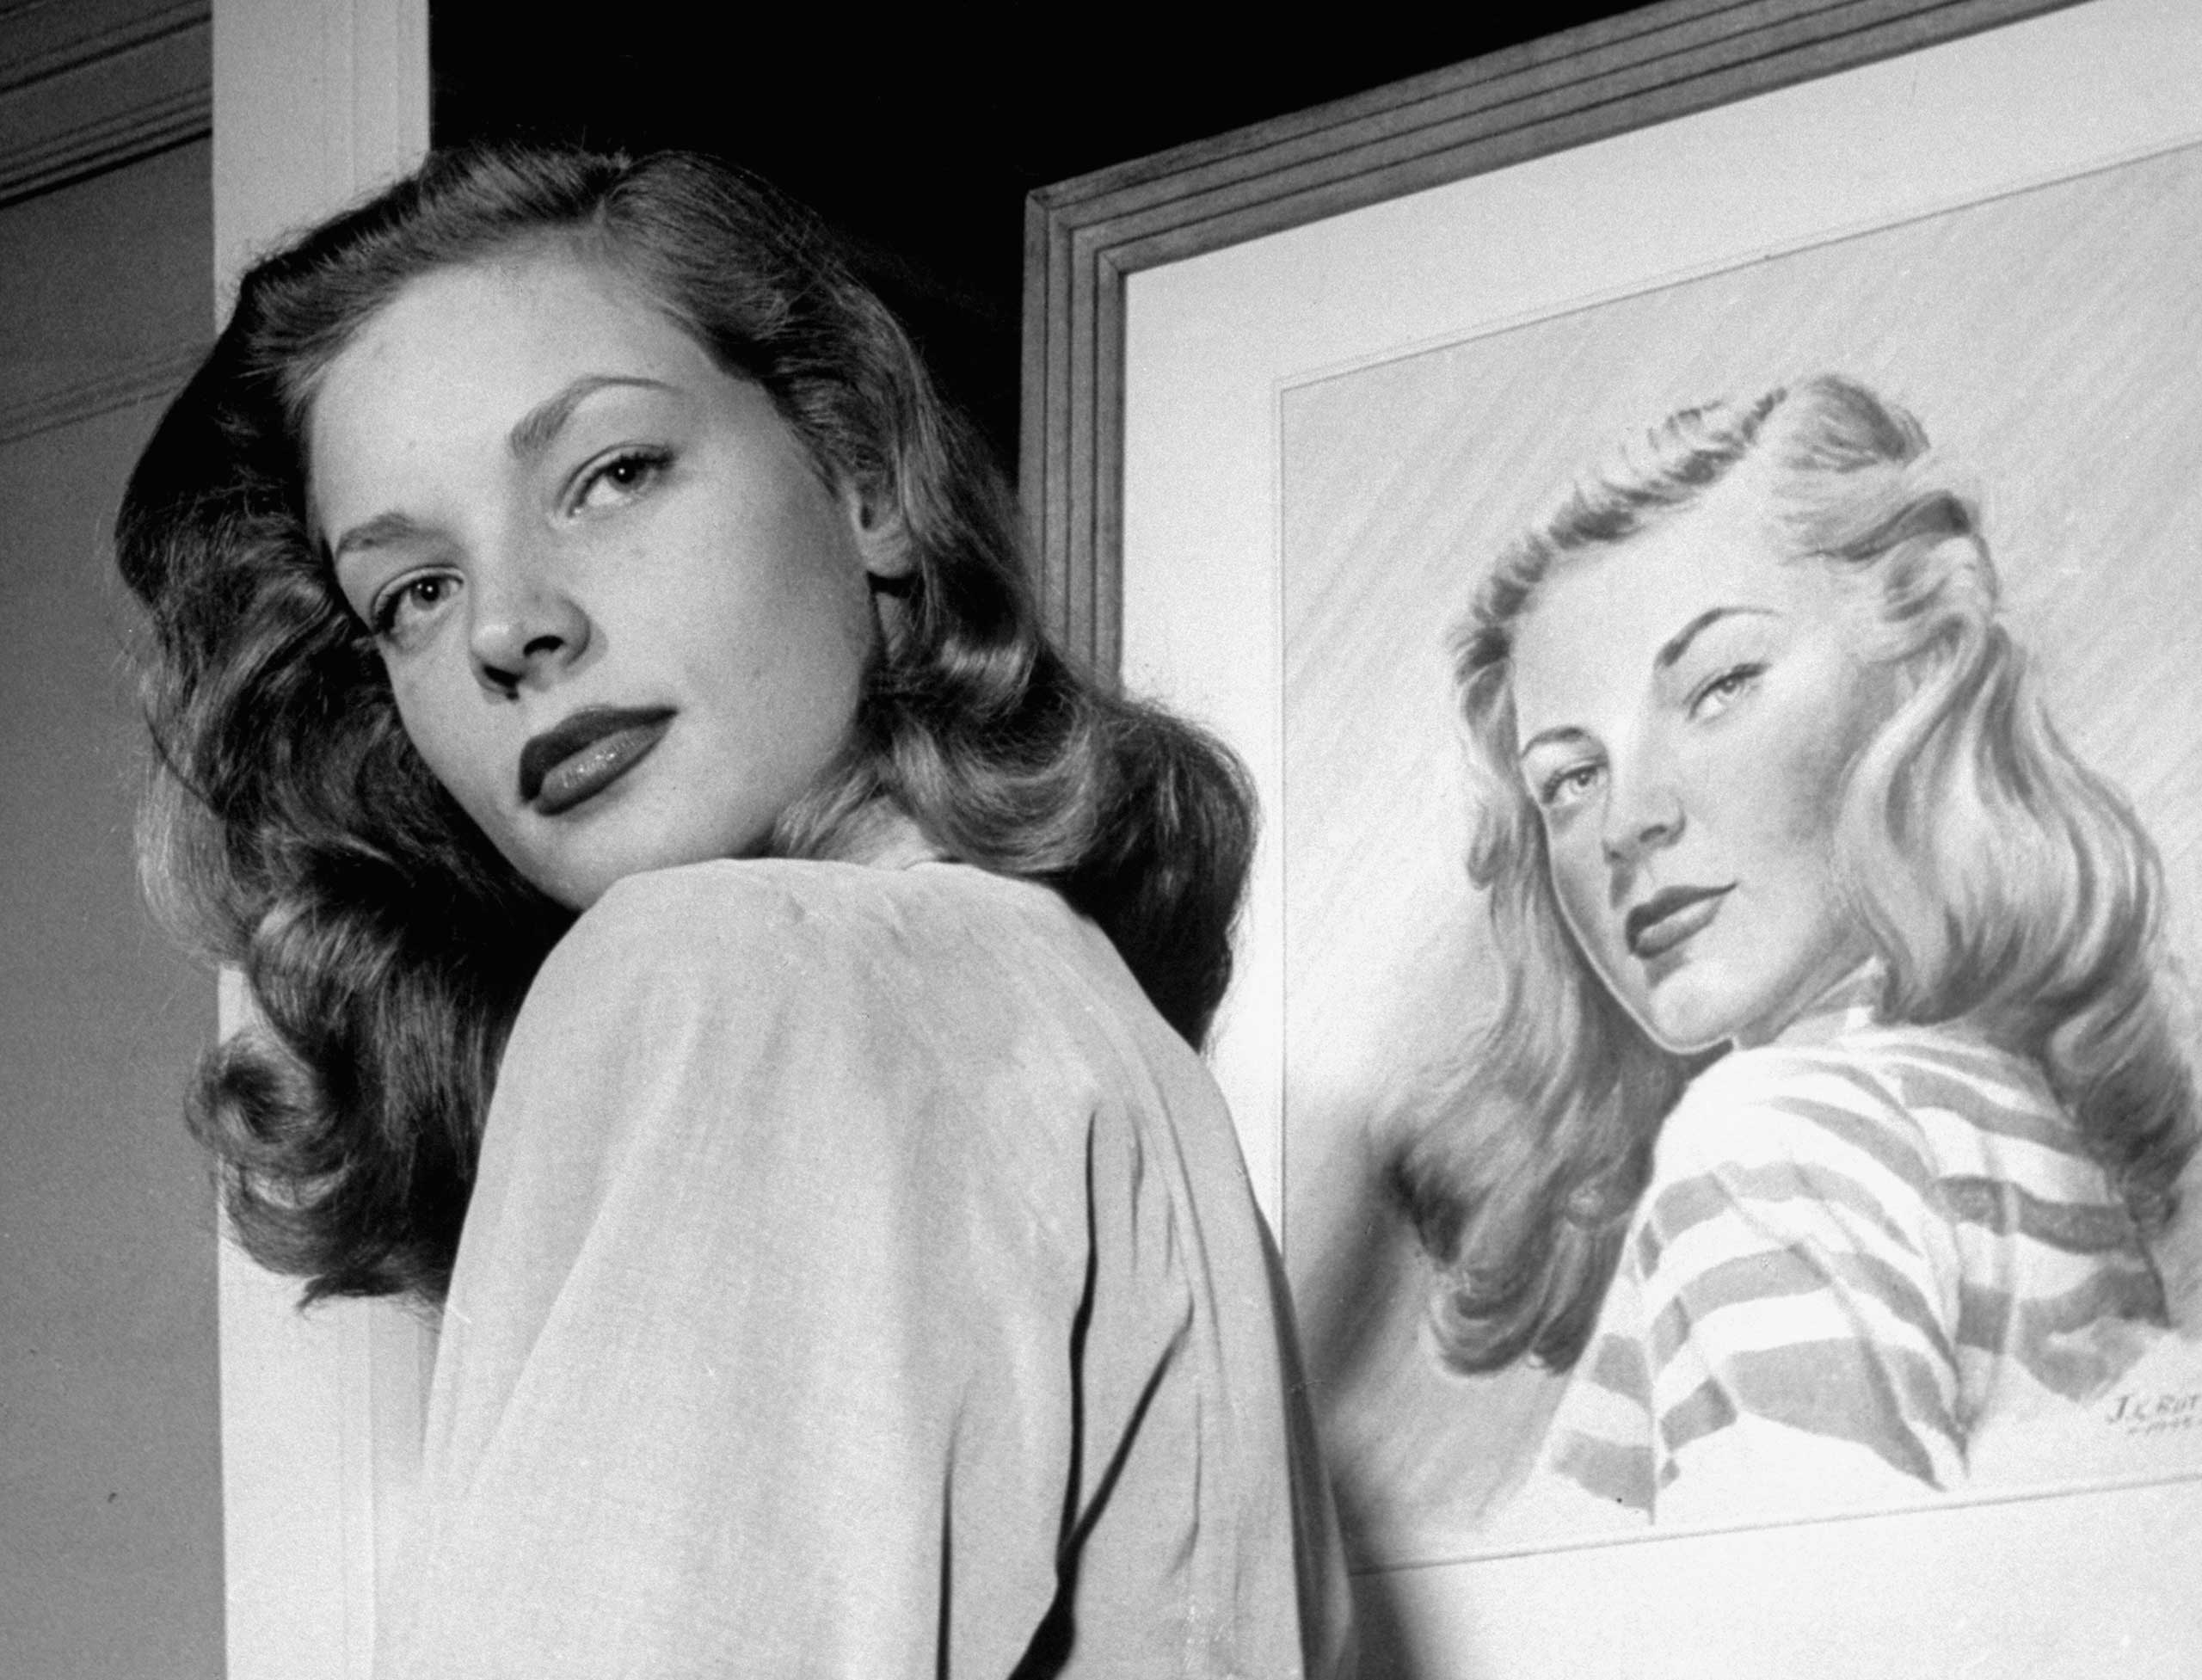 Not originally published in LIFE magazine. Lauren Bacall at Gotham Hotel, New York, 1945.